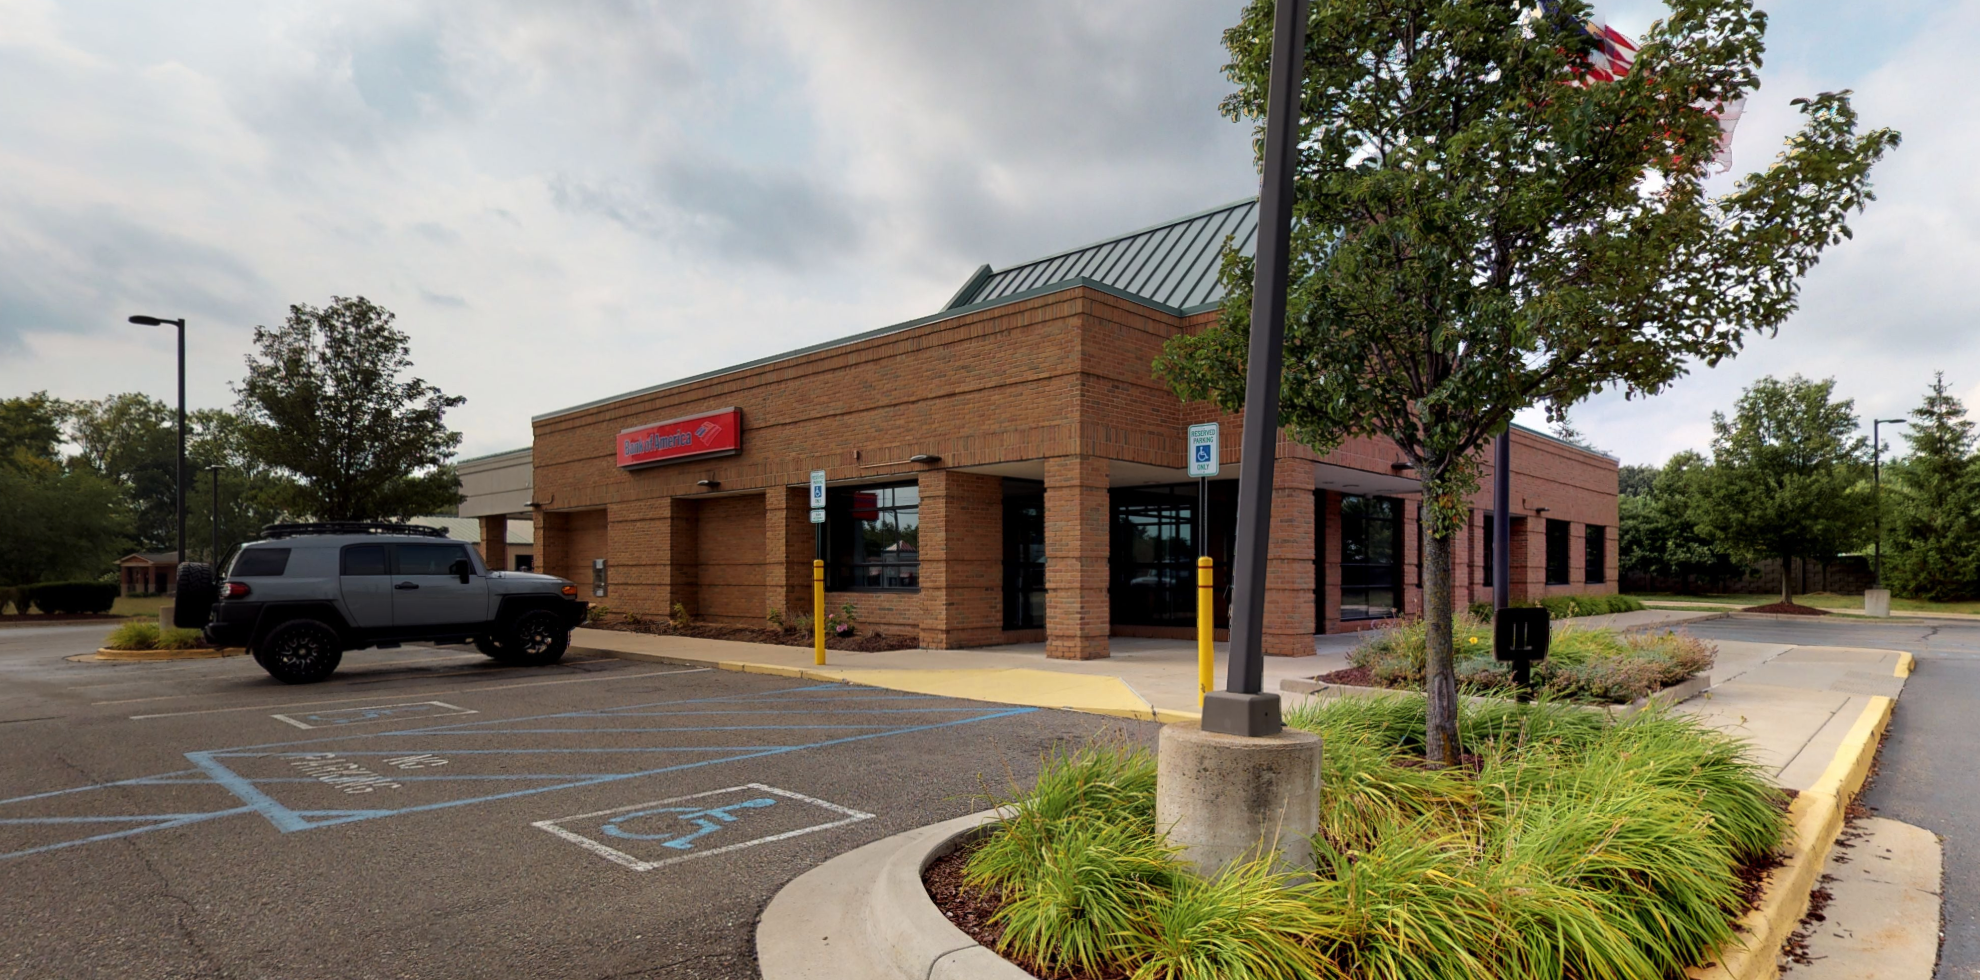 Bank of America financial center with drive-thru ATM   16124 West Rd, Woodhaven, MI 48183